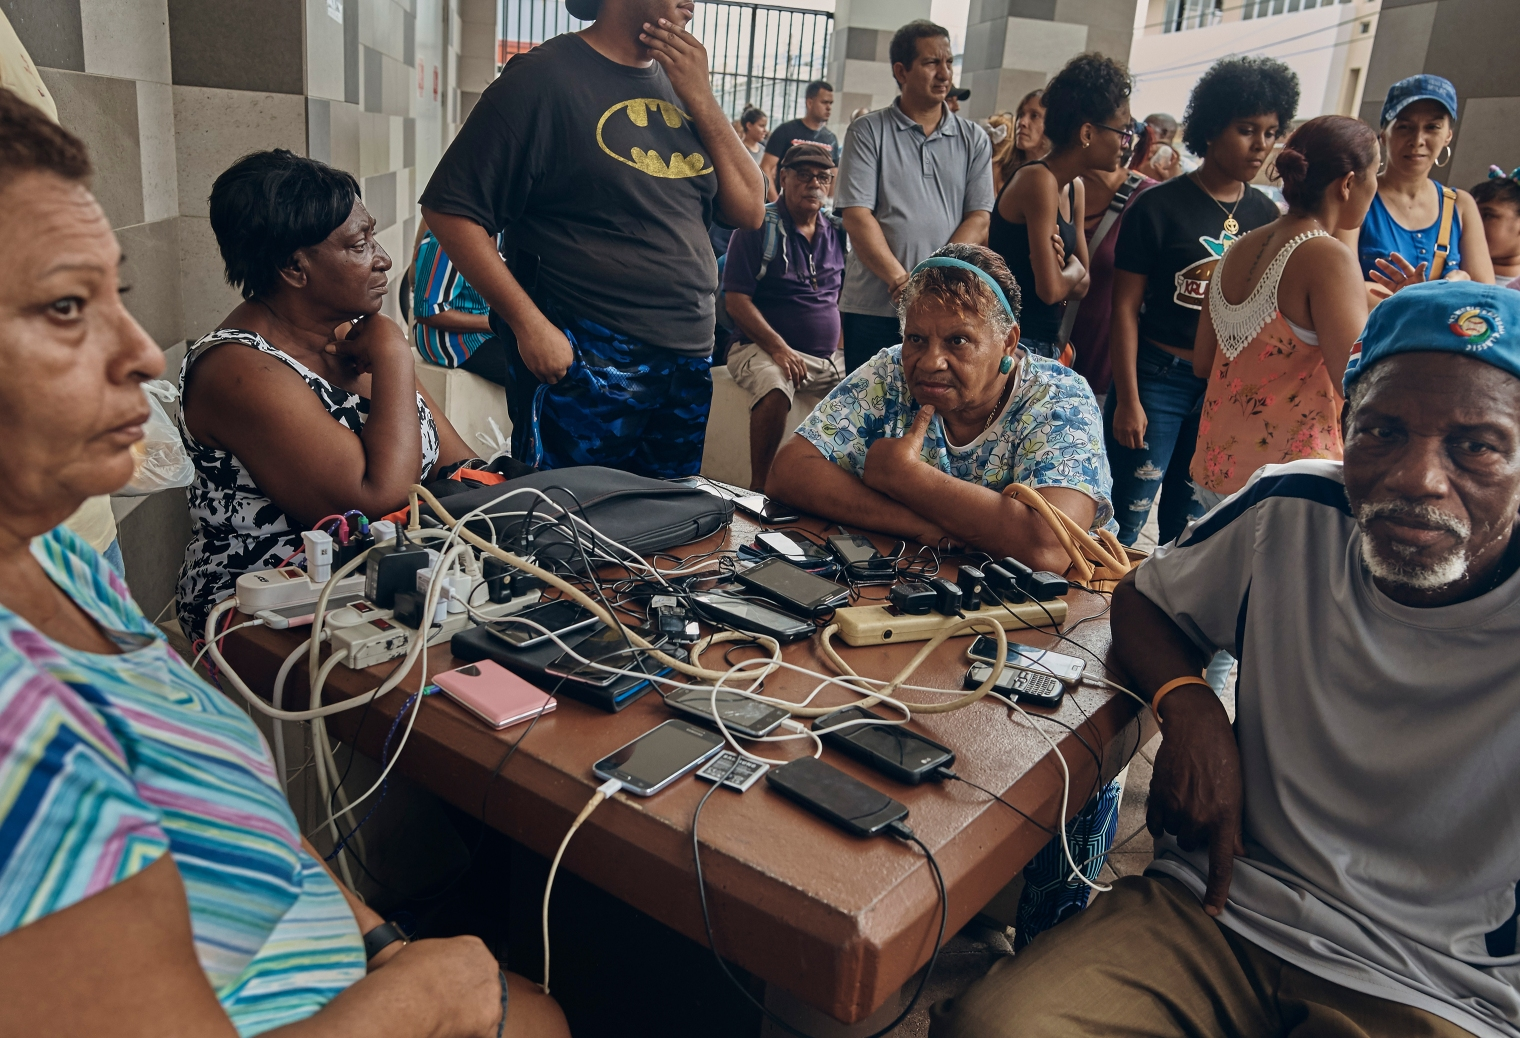 People charge their phones in San Juan, Puerto Rico, on Sept. 30, 2017.